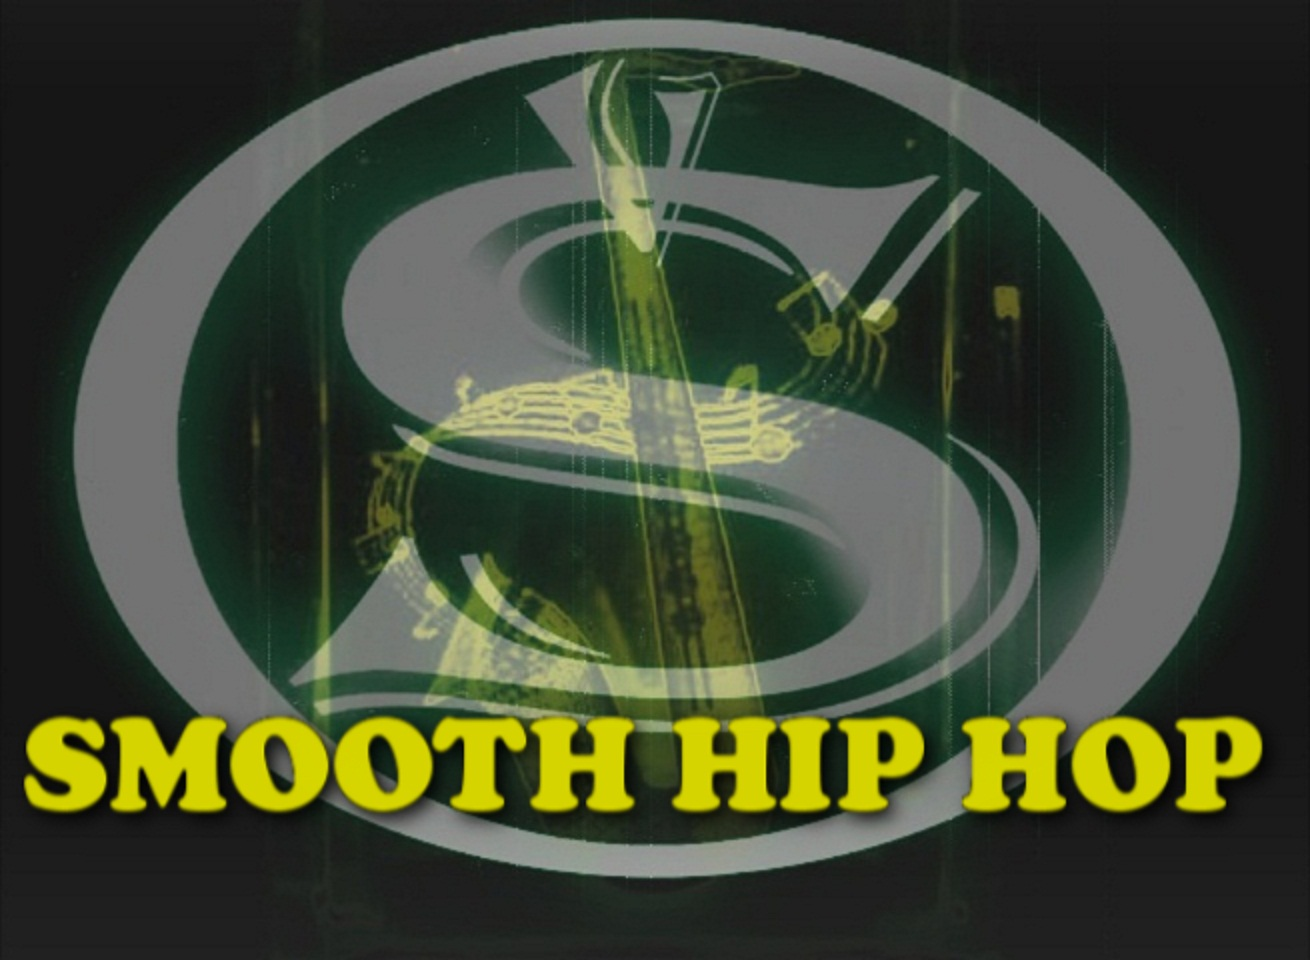 SMOOTH HIP HOP